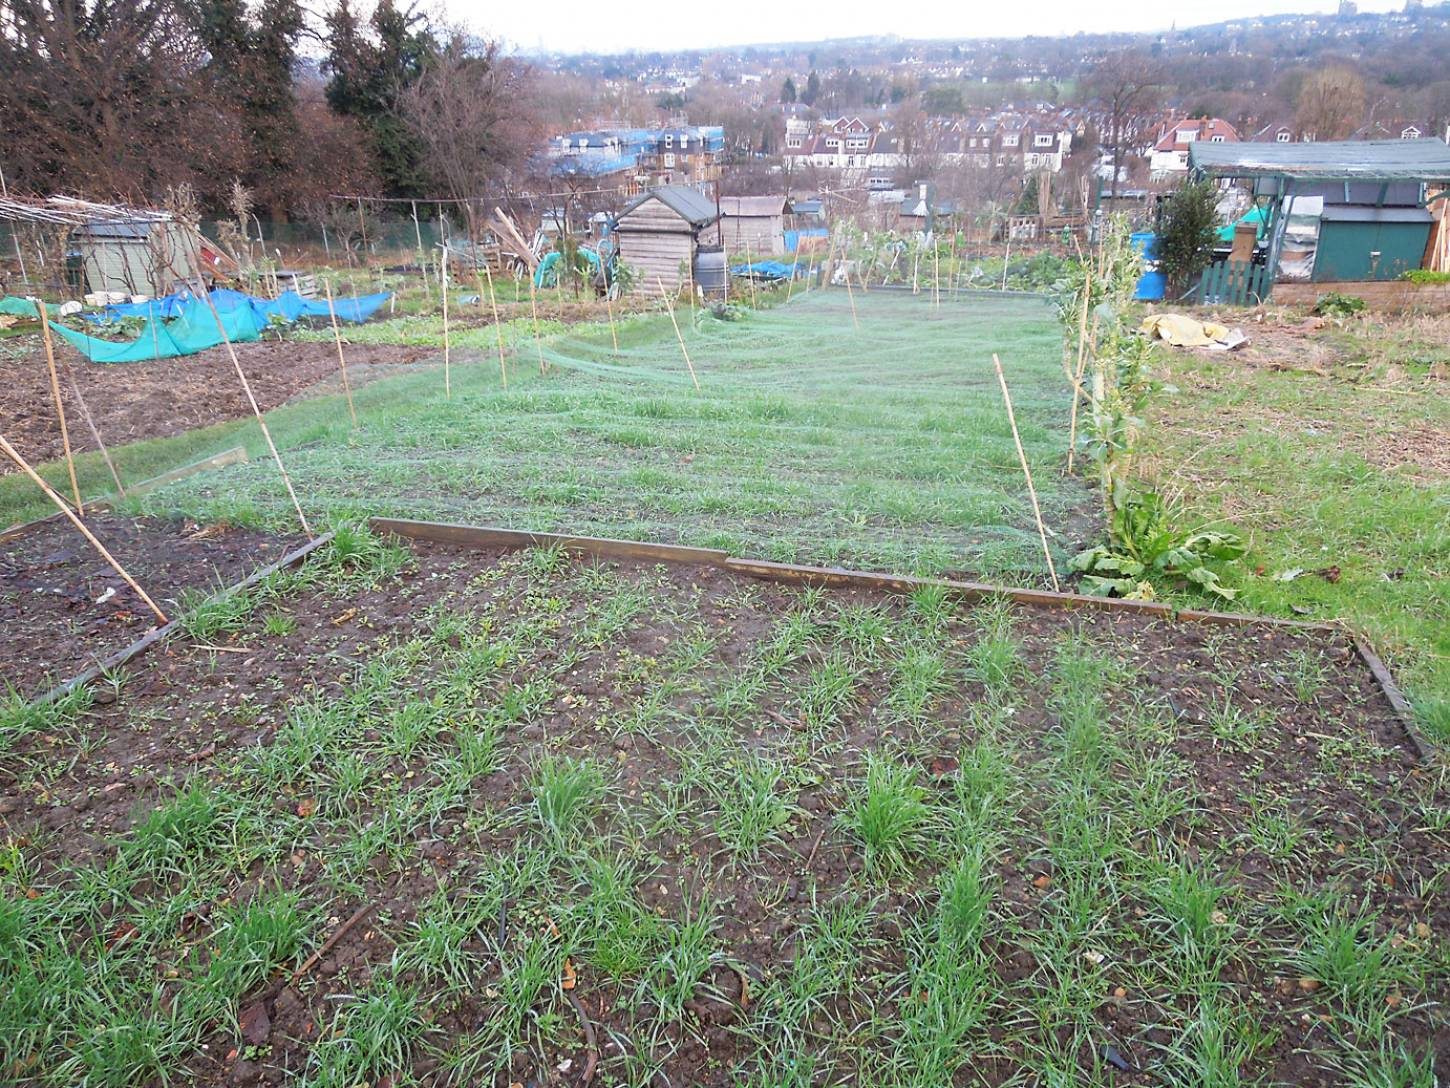 allotment review Jan. '17 - 4:06pm&nbsp;14<sup>th</sup>&nbsp;Jan.&nbsp;'17